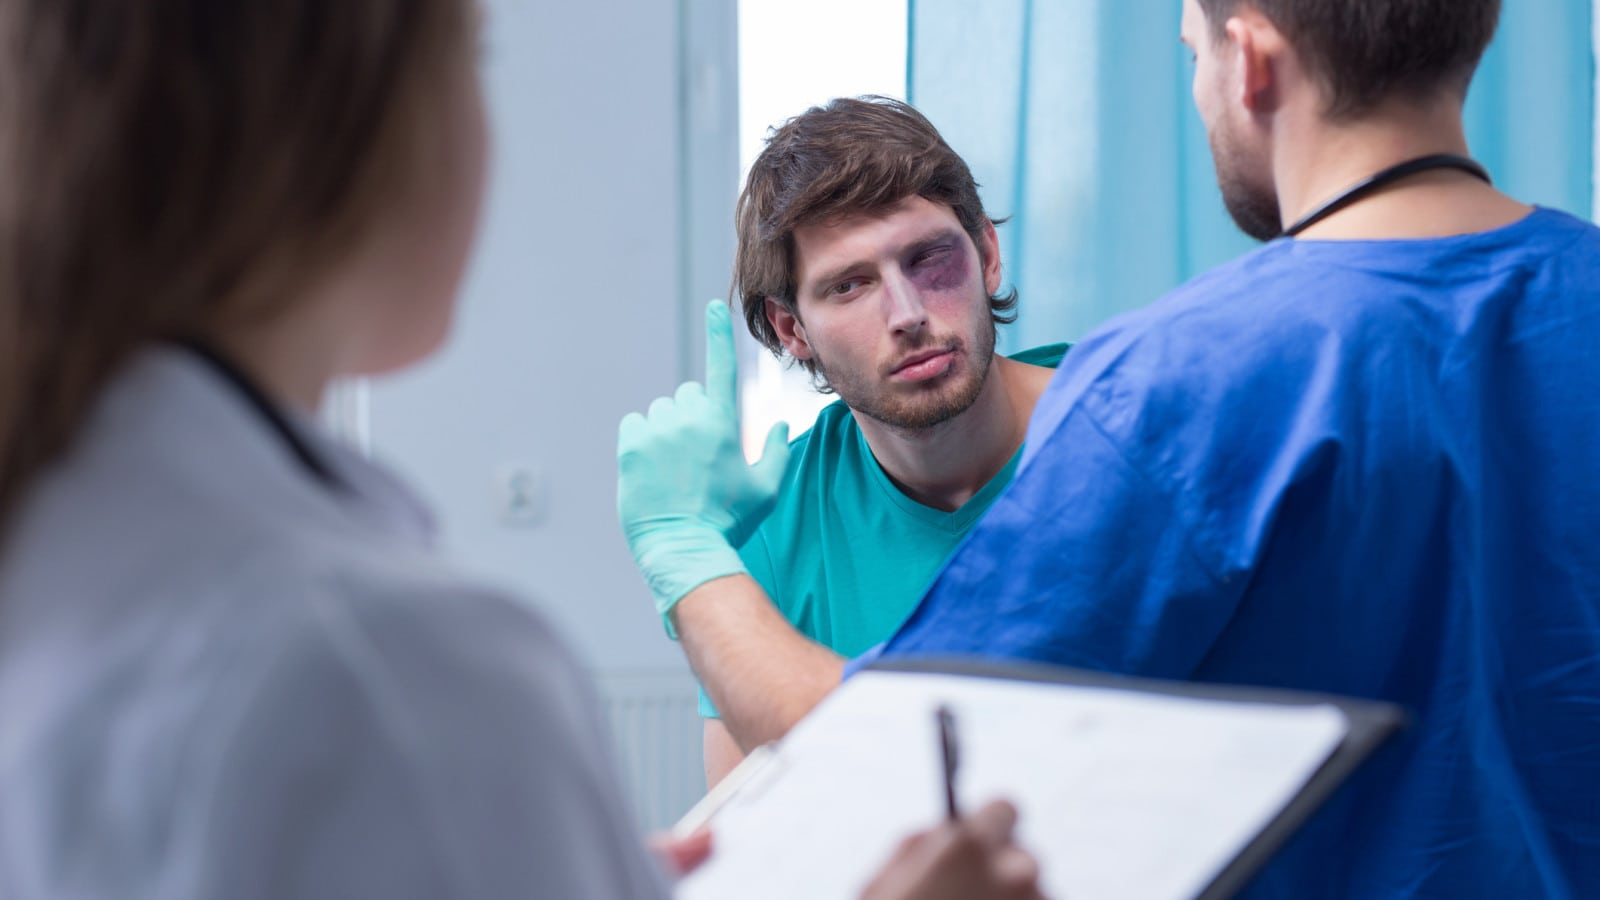 Male Patient In Surgery Room Stock Photo